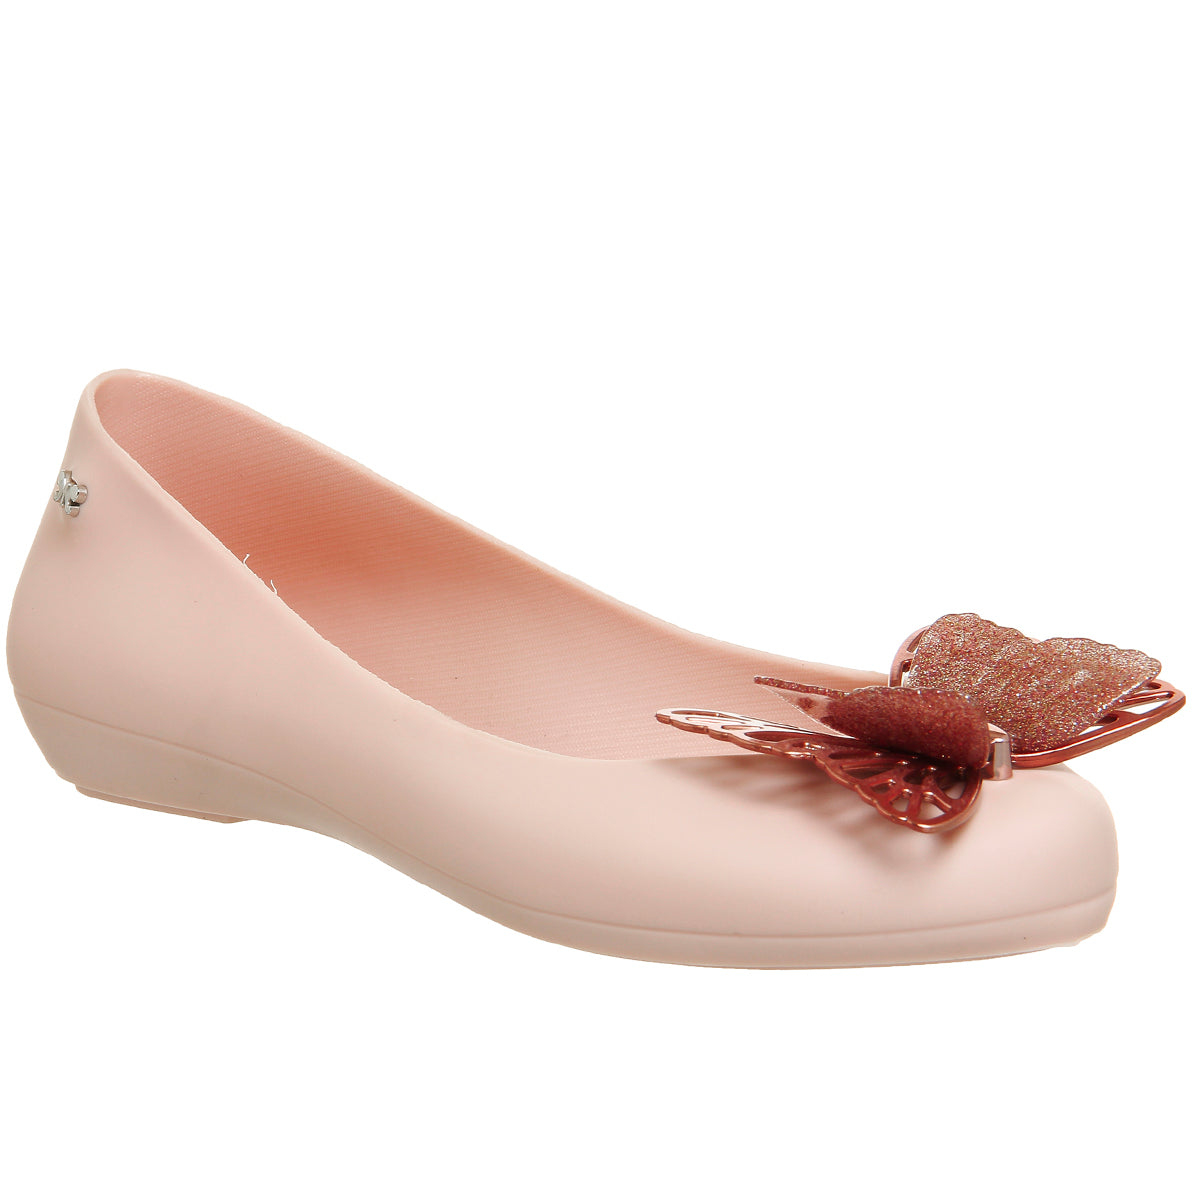 Kids Butterfly Luxe Candy Scented Jellie Sandal- Blush